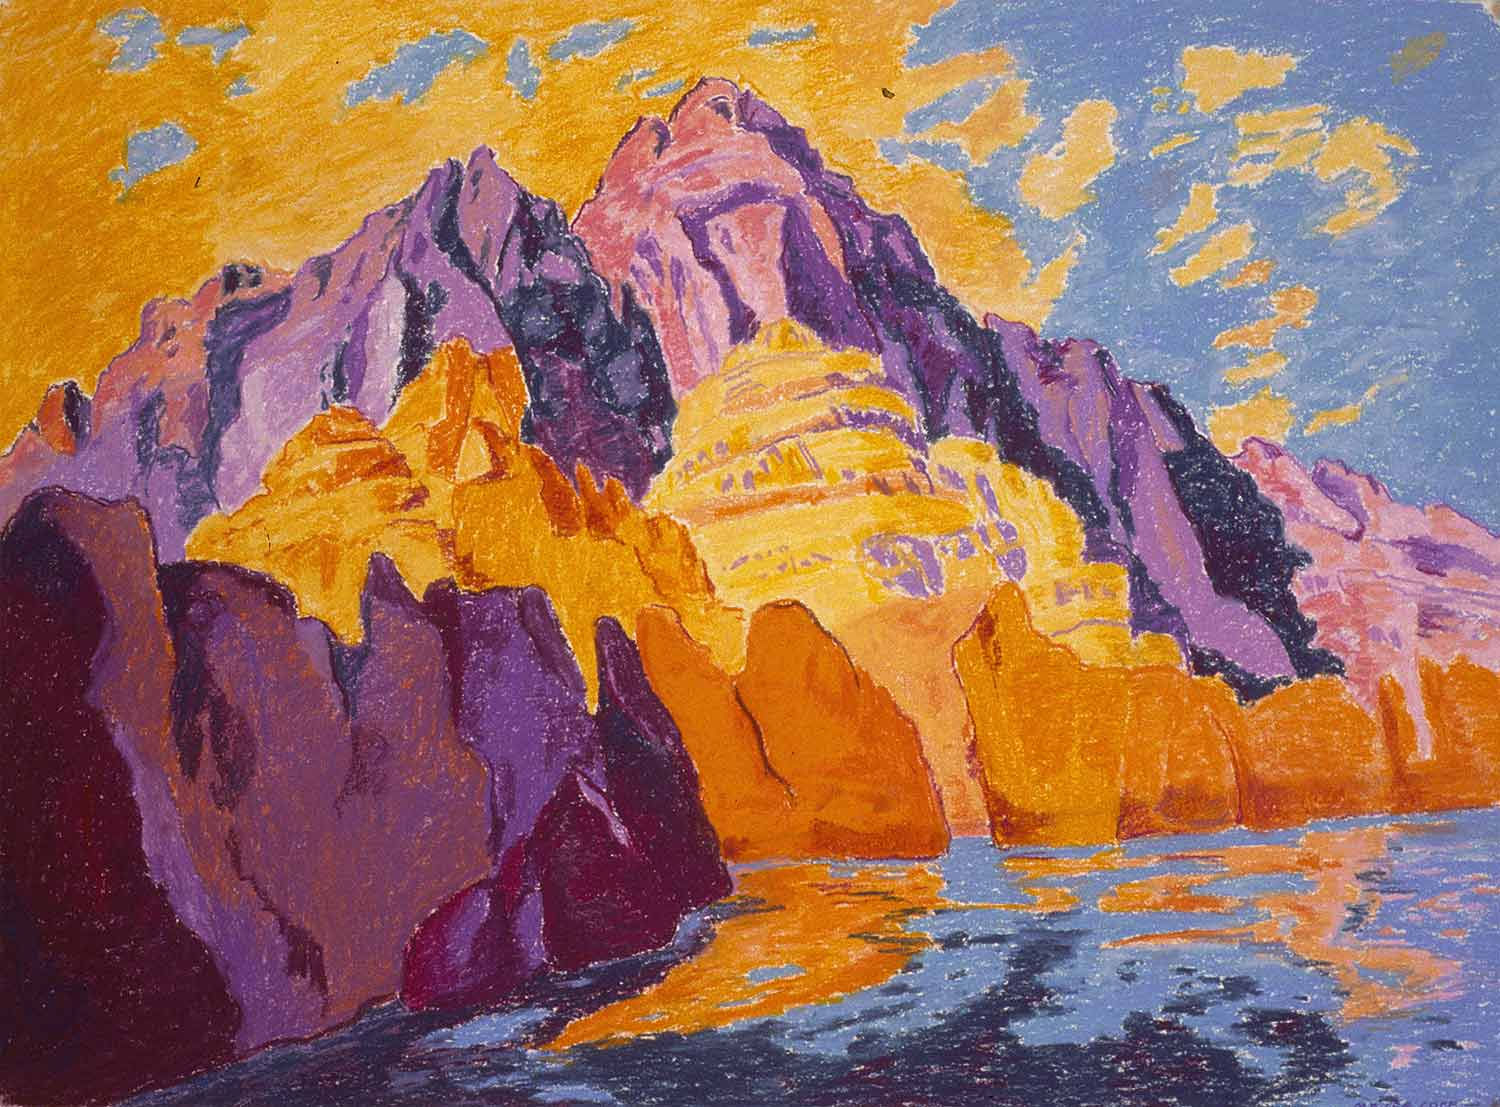 Grand Canyon #11, Oil pastel on paper by Mary Alice Copp